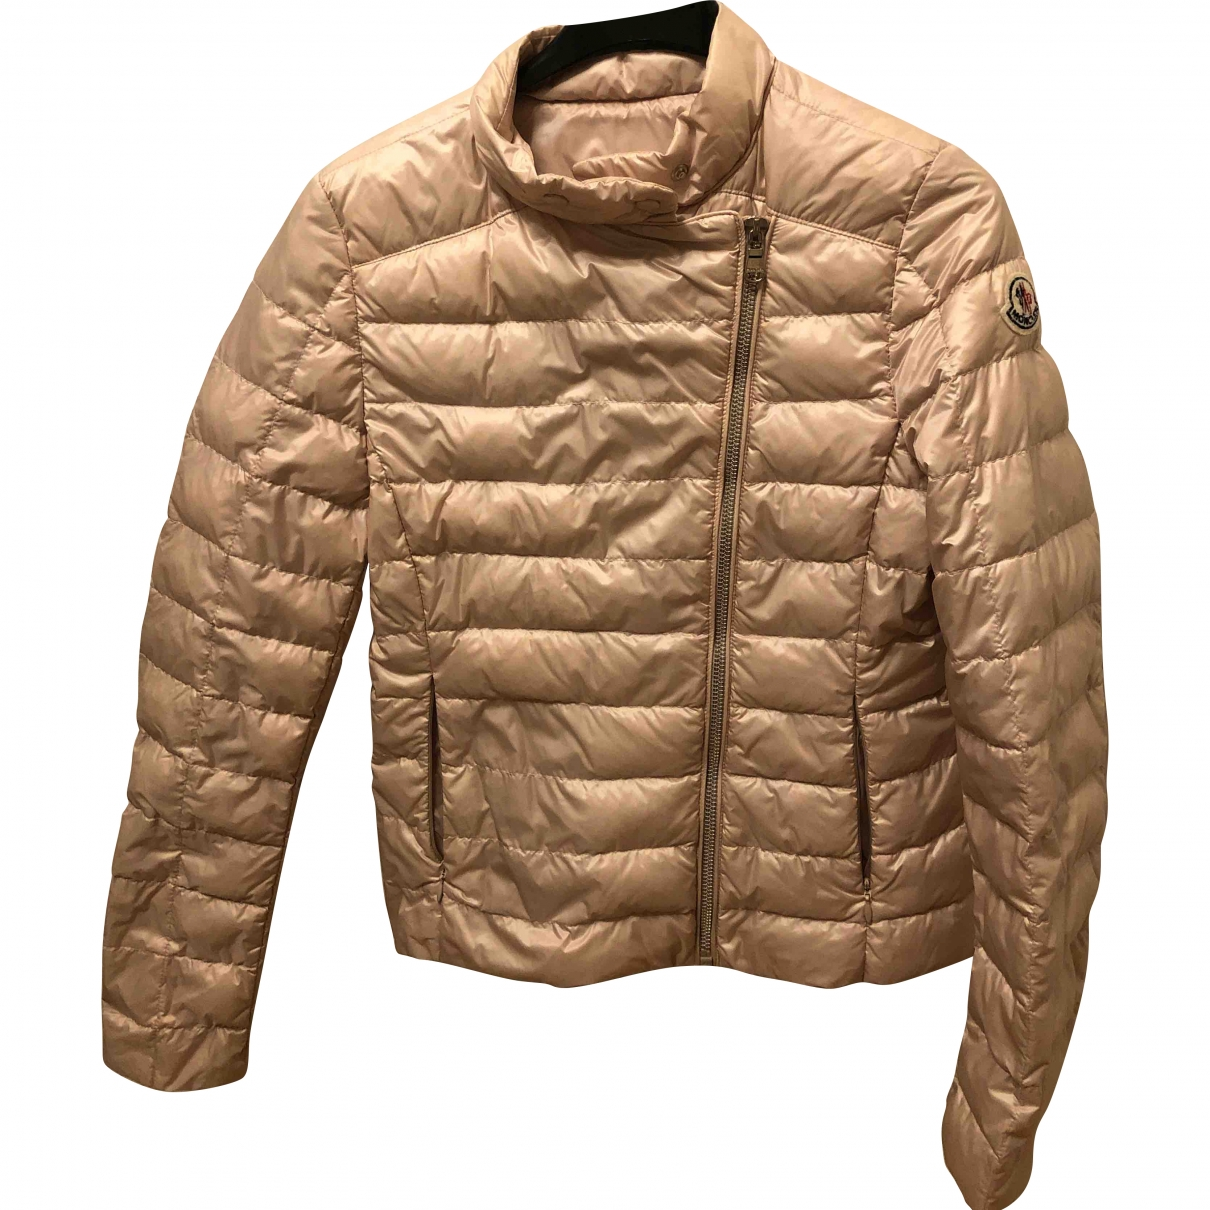 Moncler \N Pink jacket & coat for Kids 12 years - XS FR